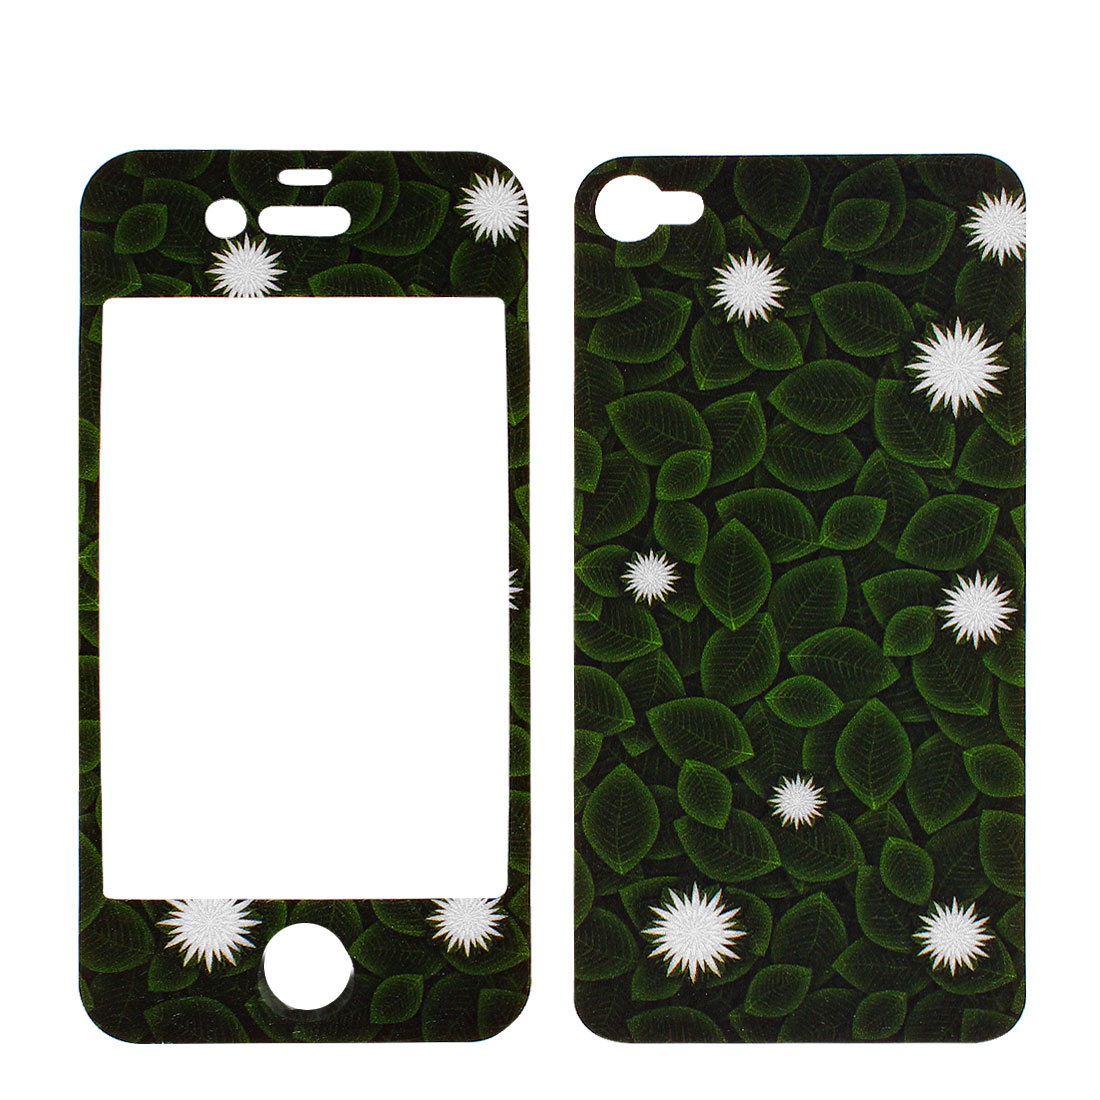 Front + Back Sticker Decal Guard Shield Dark Green Leaf Pattern 2 Pcs for iPhone 4 4G 4S